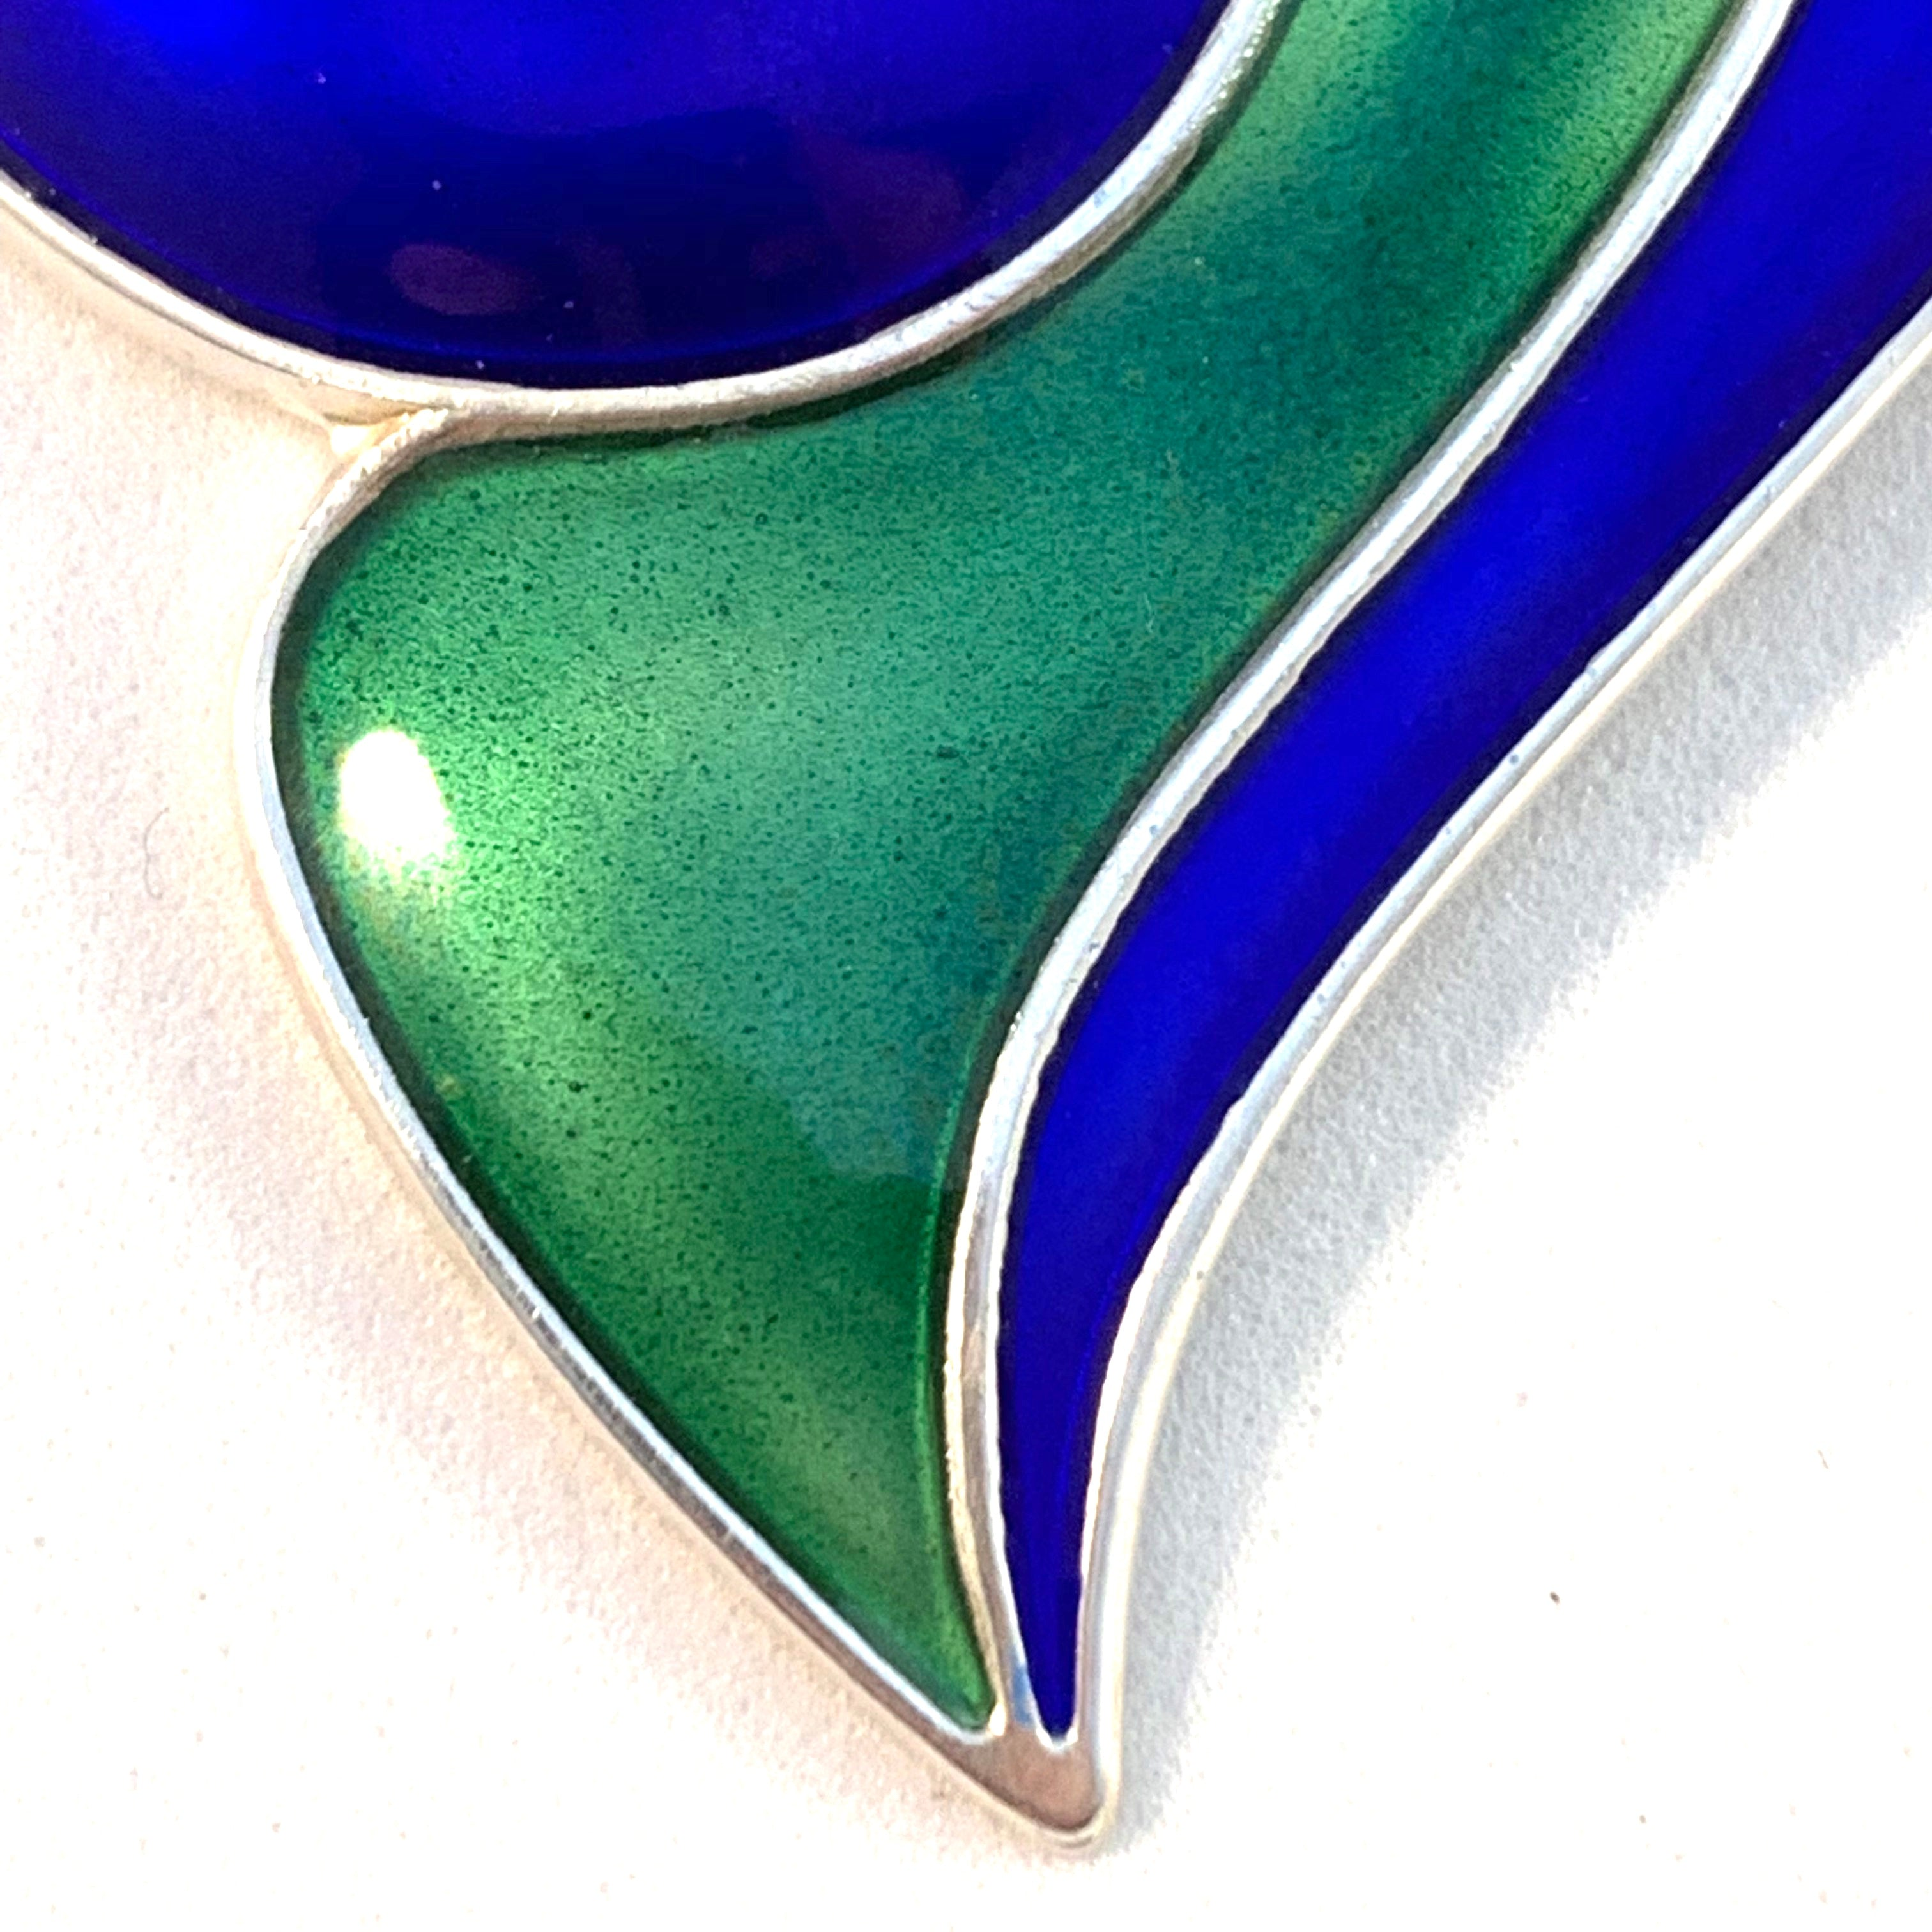 Synnøve Korssjøen, for David Andersen, Norway. Large Vintage Sterling Silver Blue and Green Enamel Sculptural Pendant